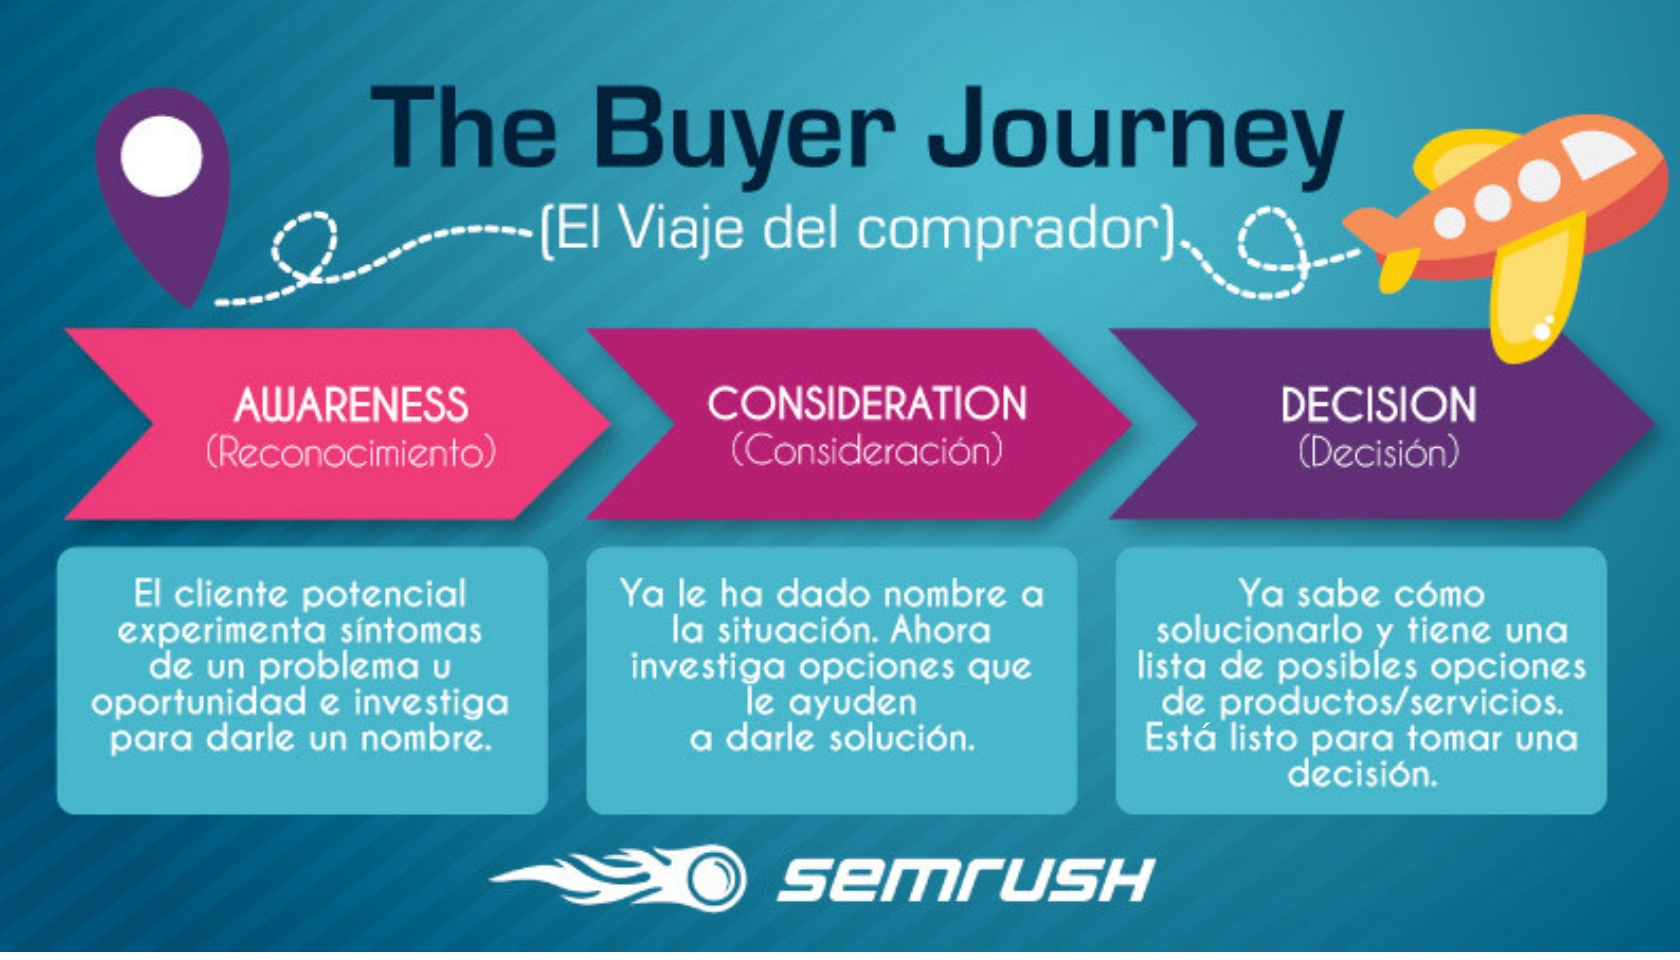 Buyer journey etapas